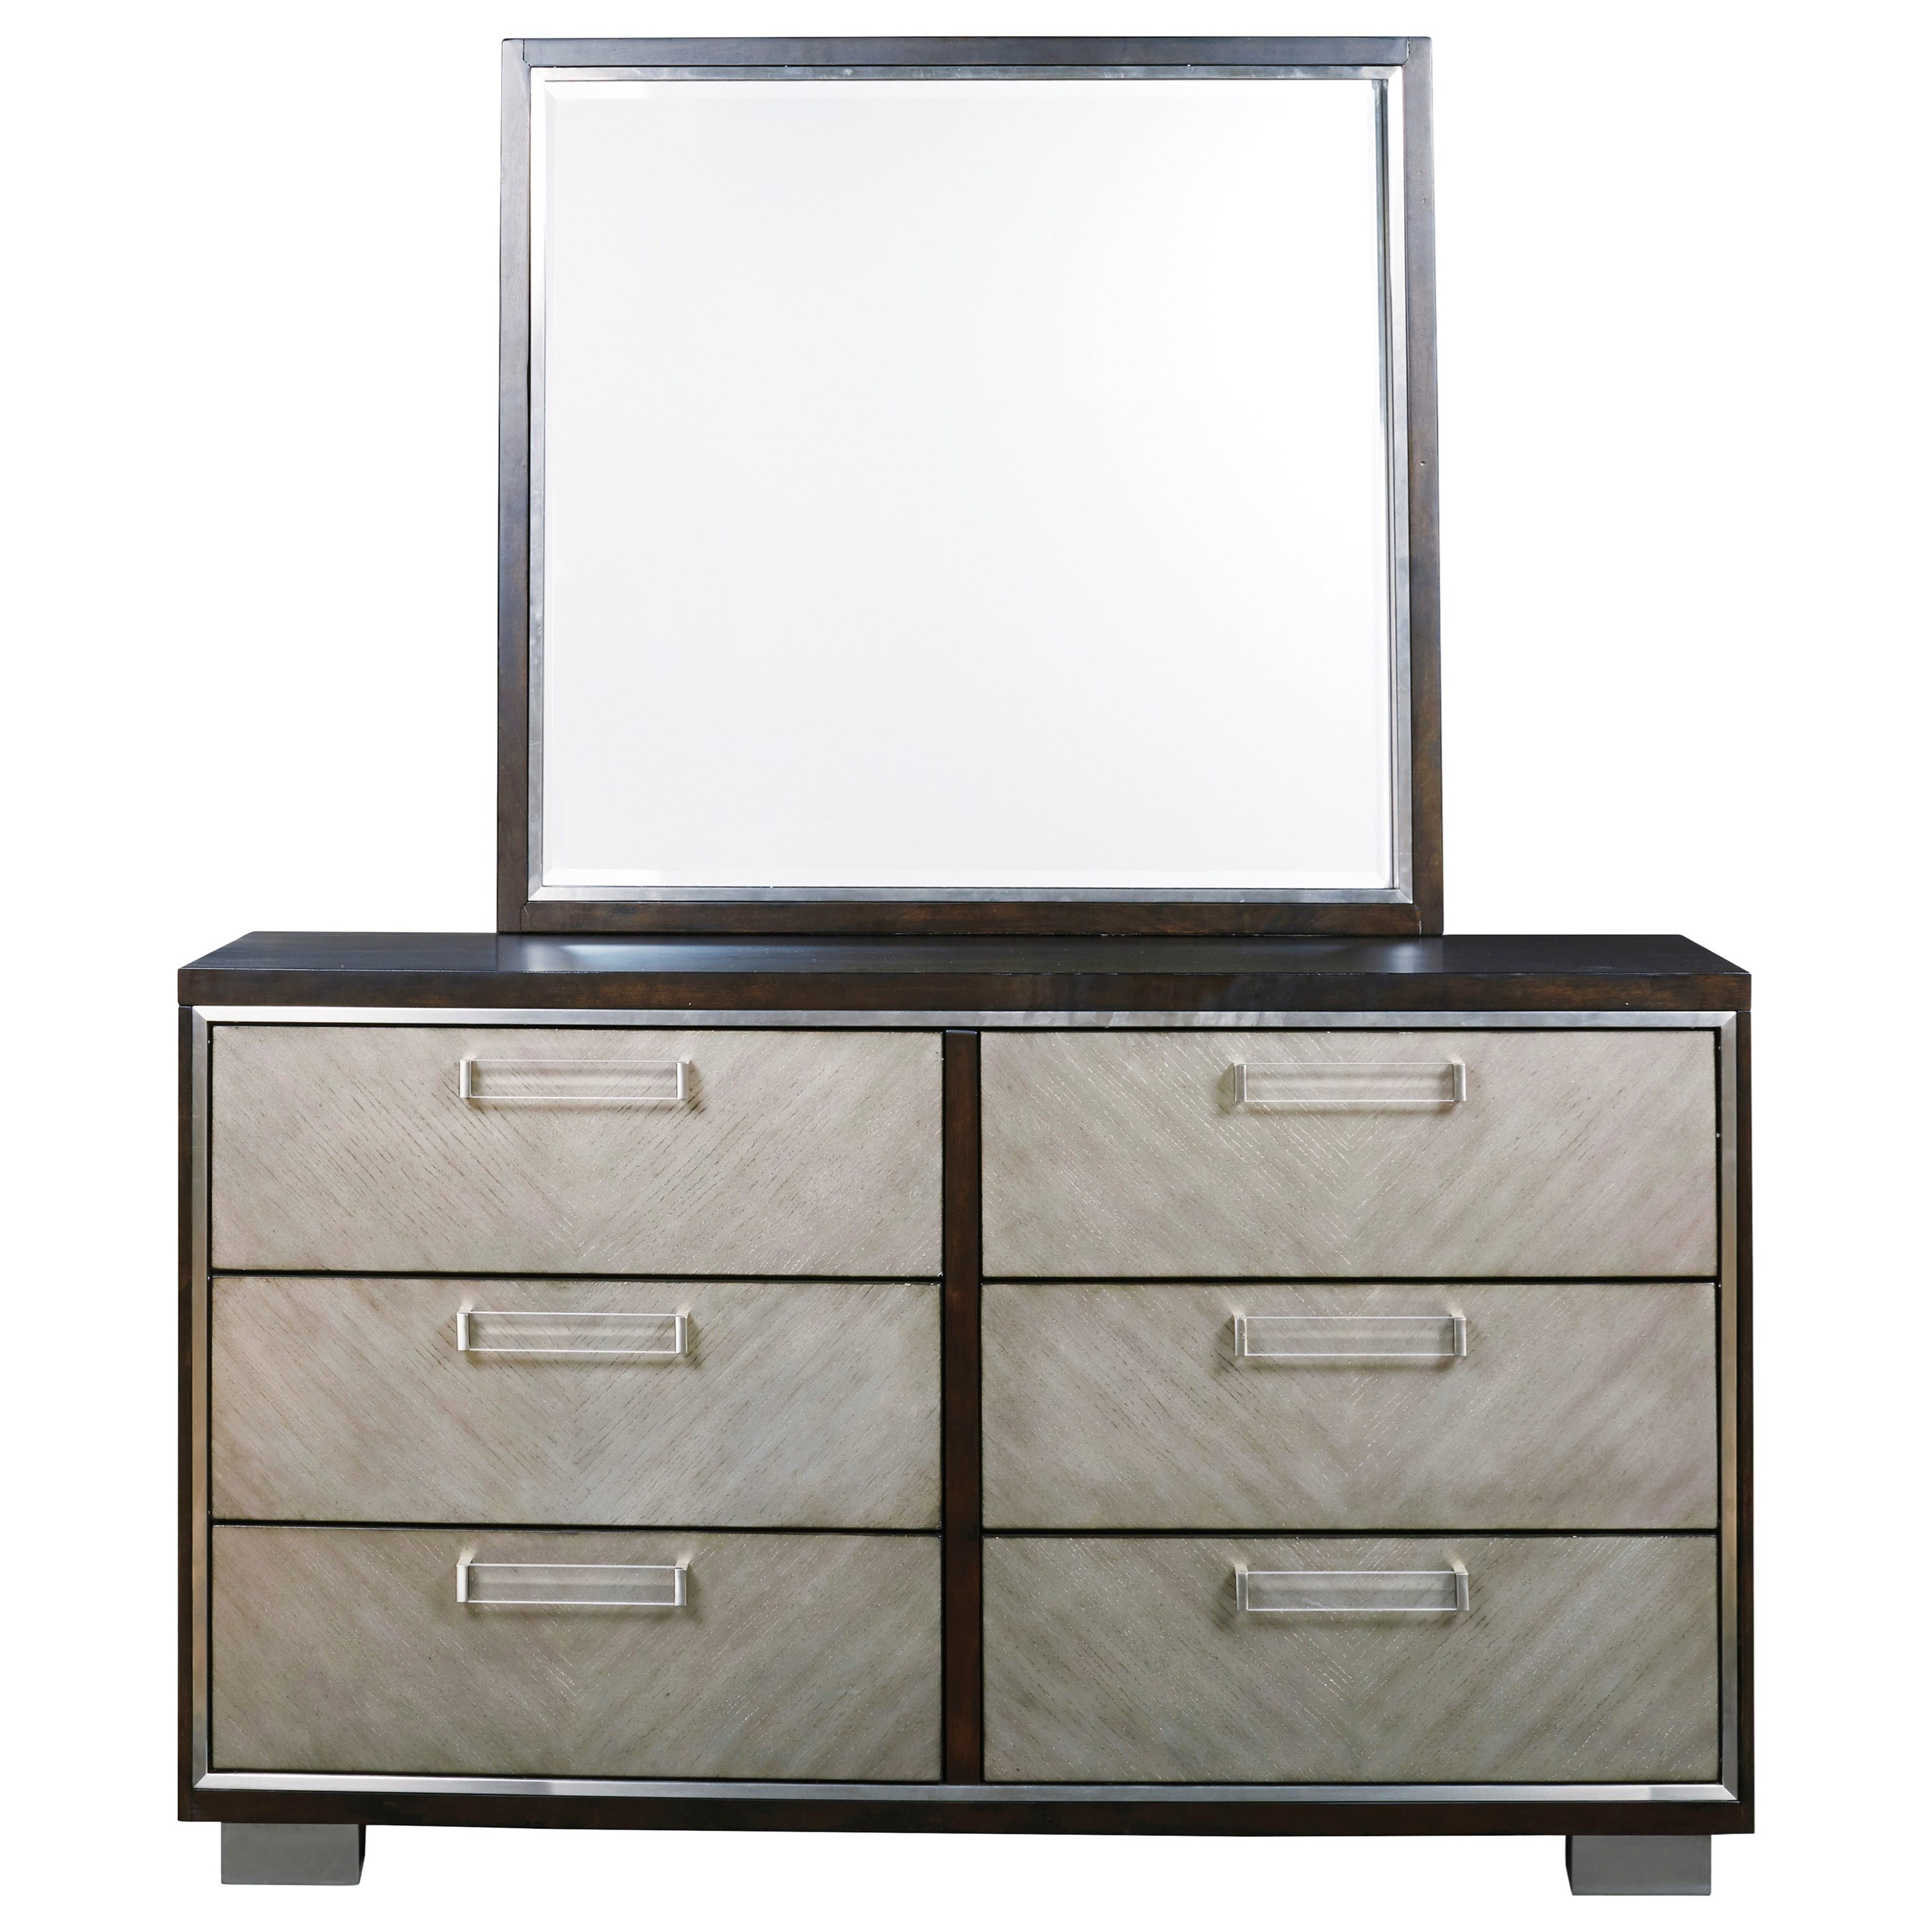 Maretto Dresser and Mirror Set by Signature Design by Ashley at Household Furniture